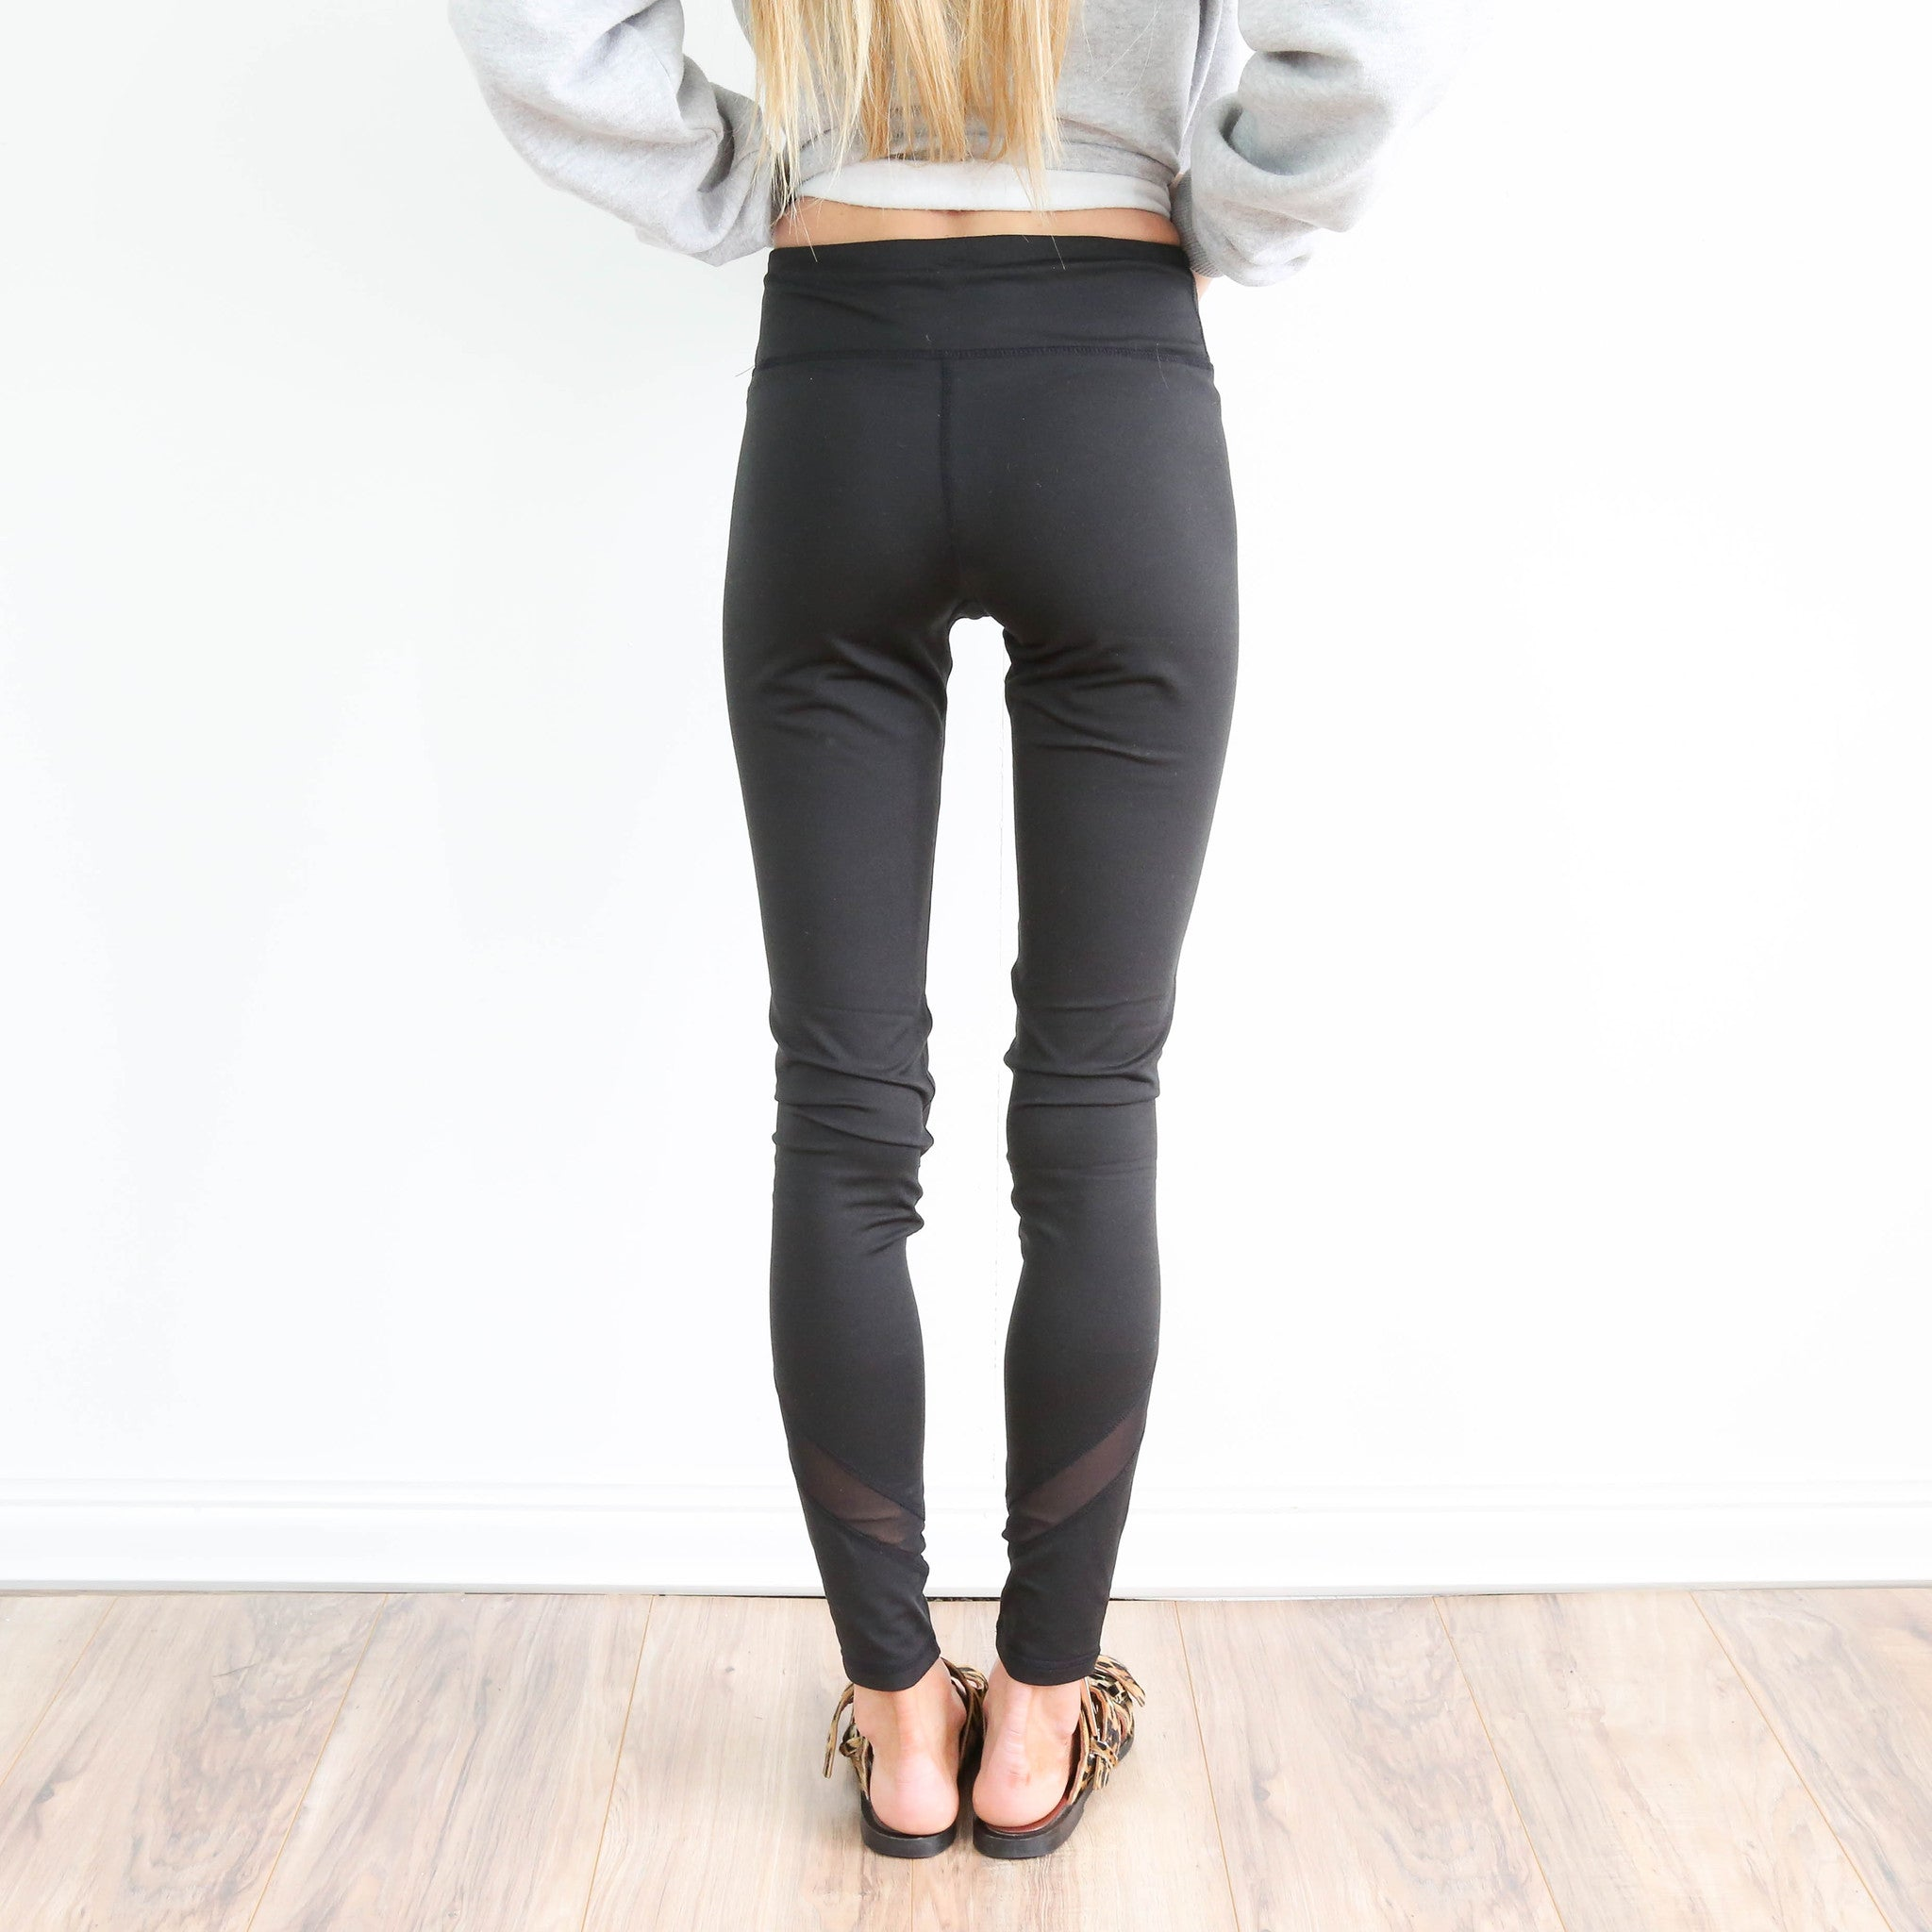 Black Sheer Bottom Legging